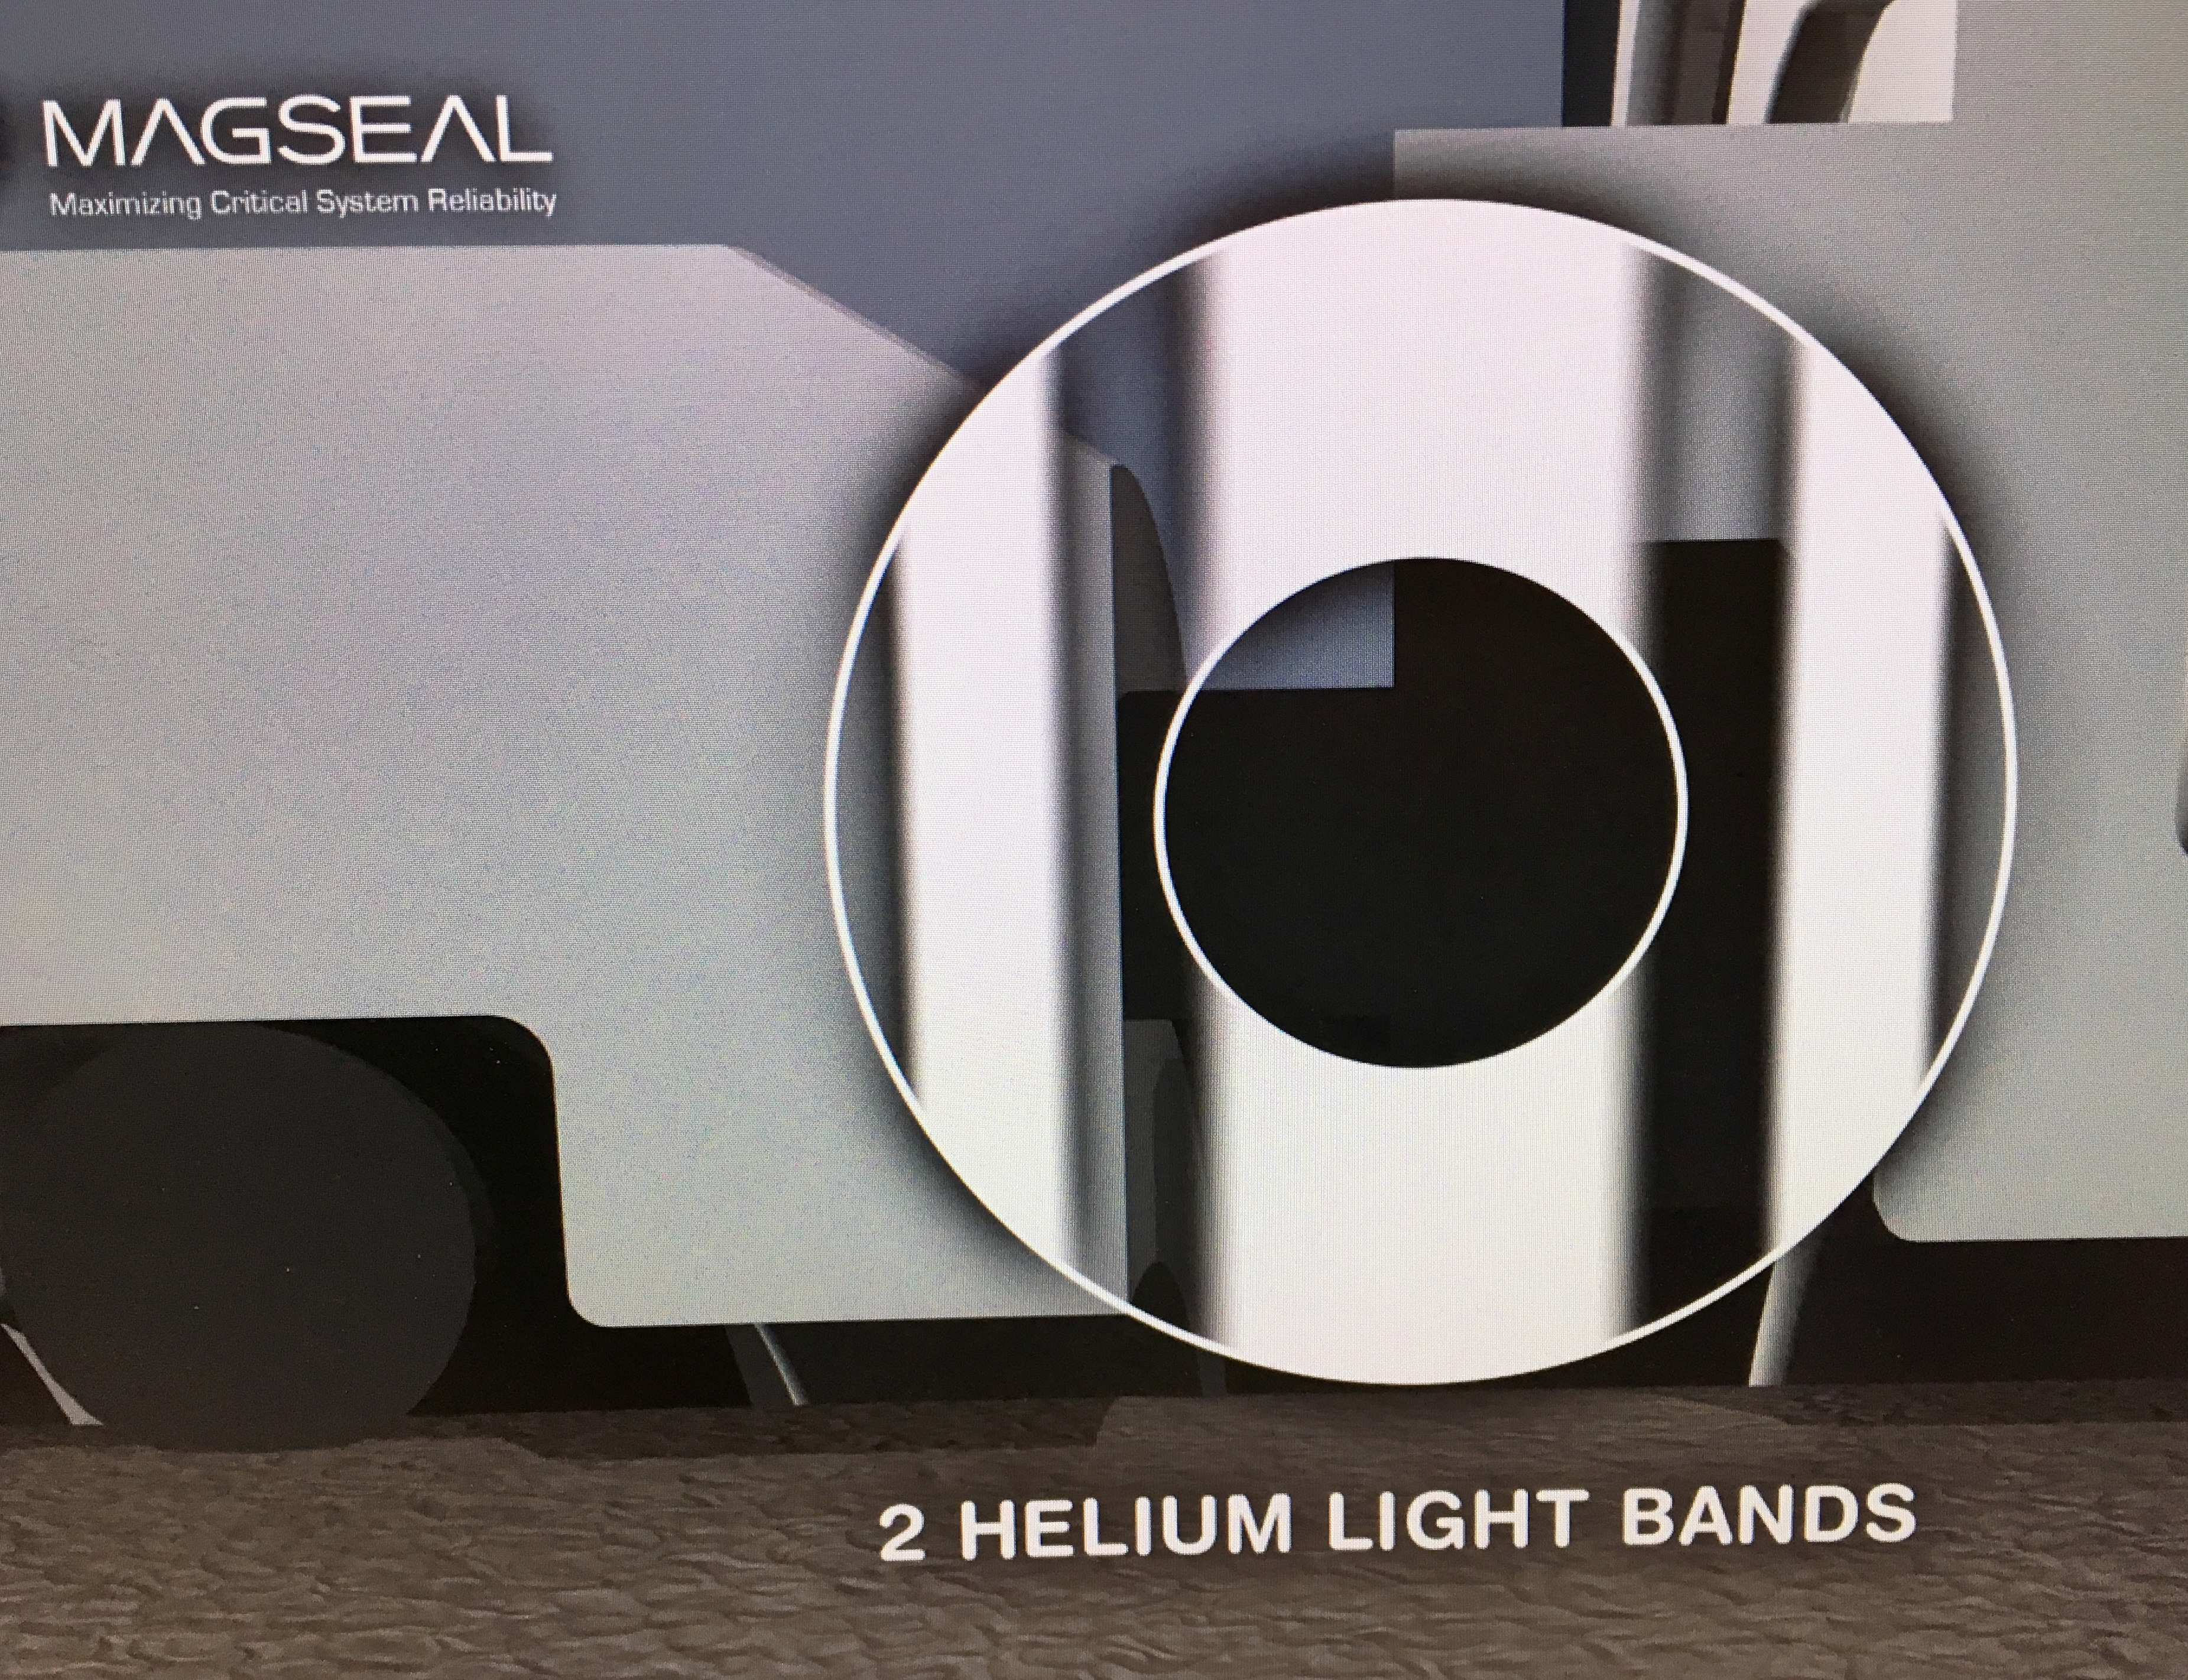 2 Helium Light Bands